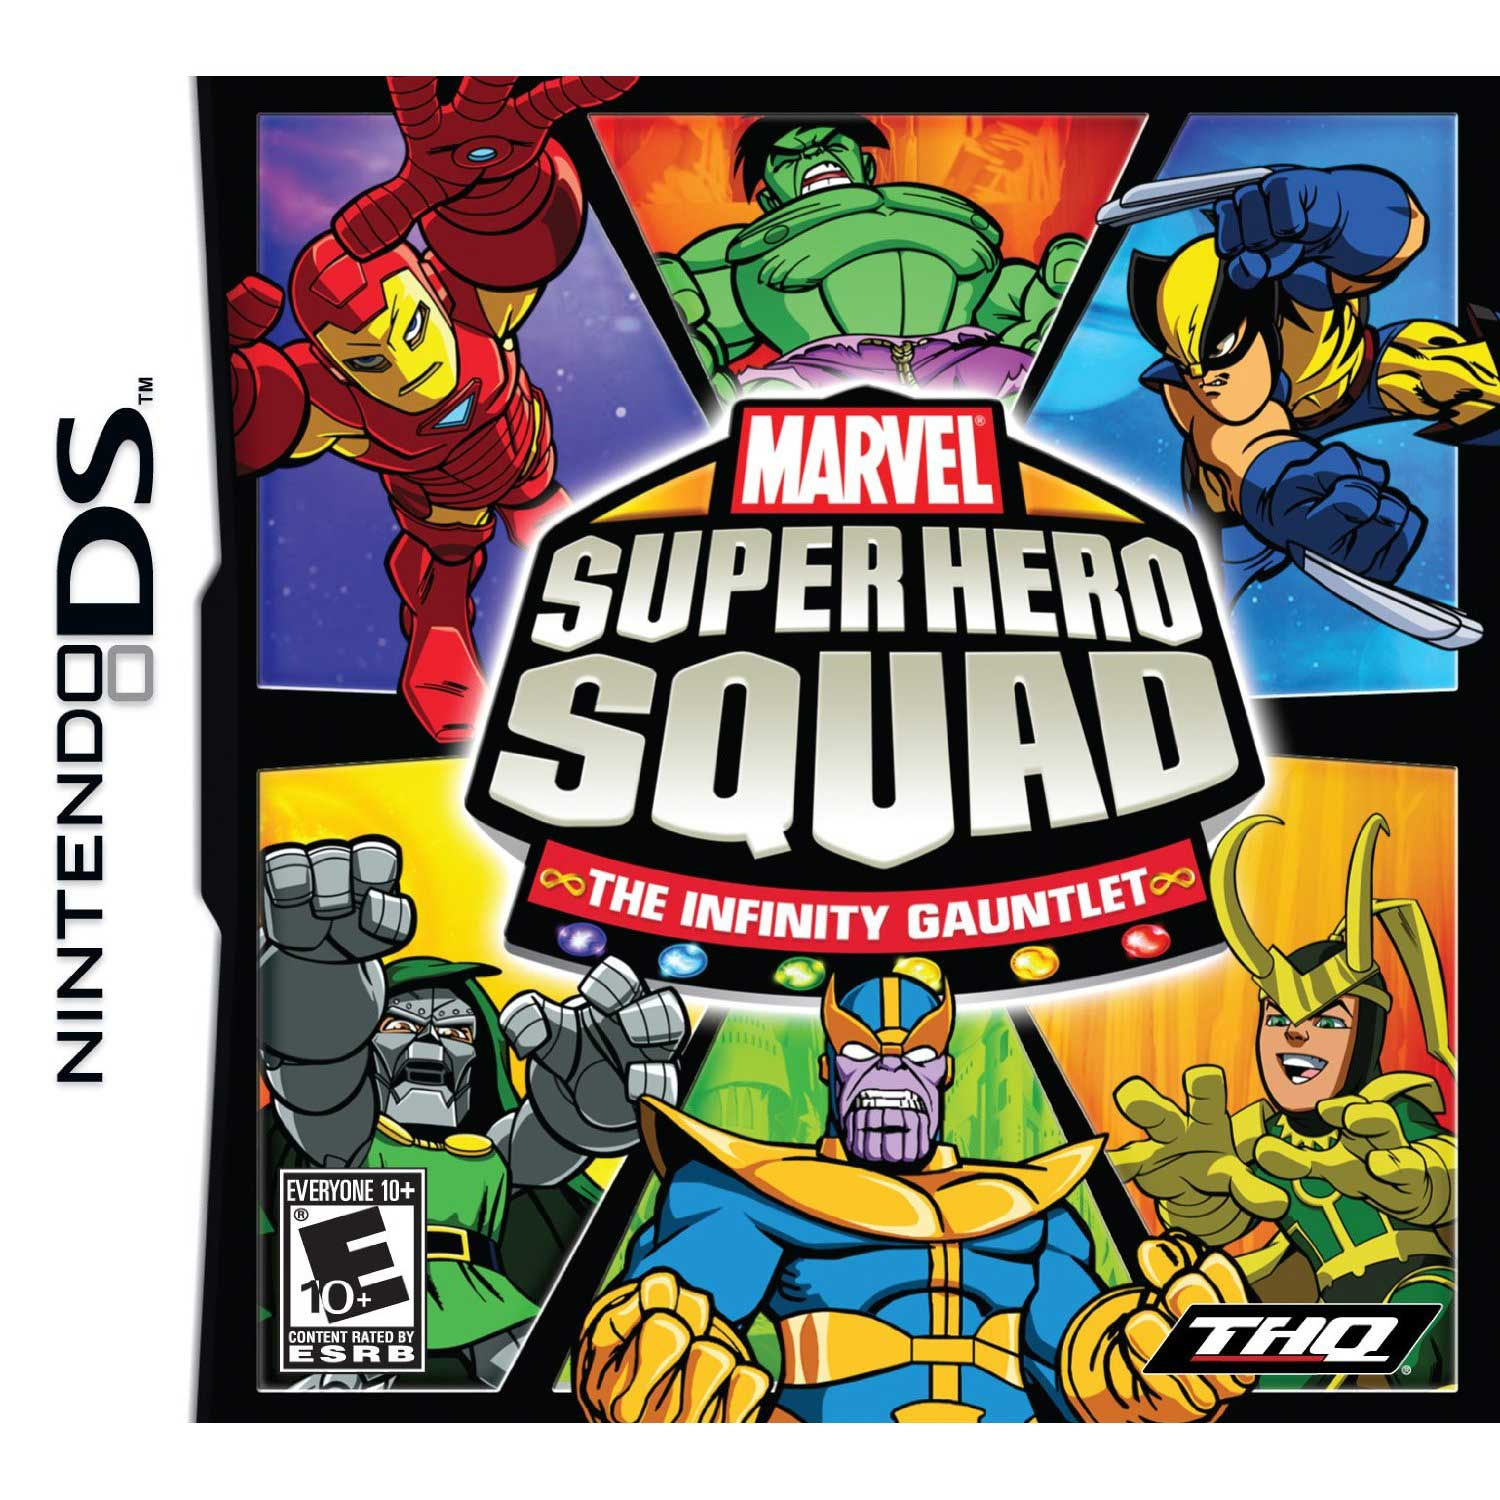 Marvel super hero squad the infinity gauntlet ds game